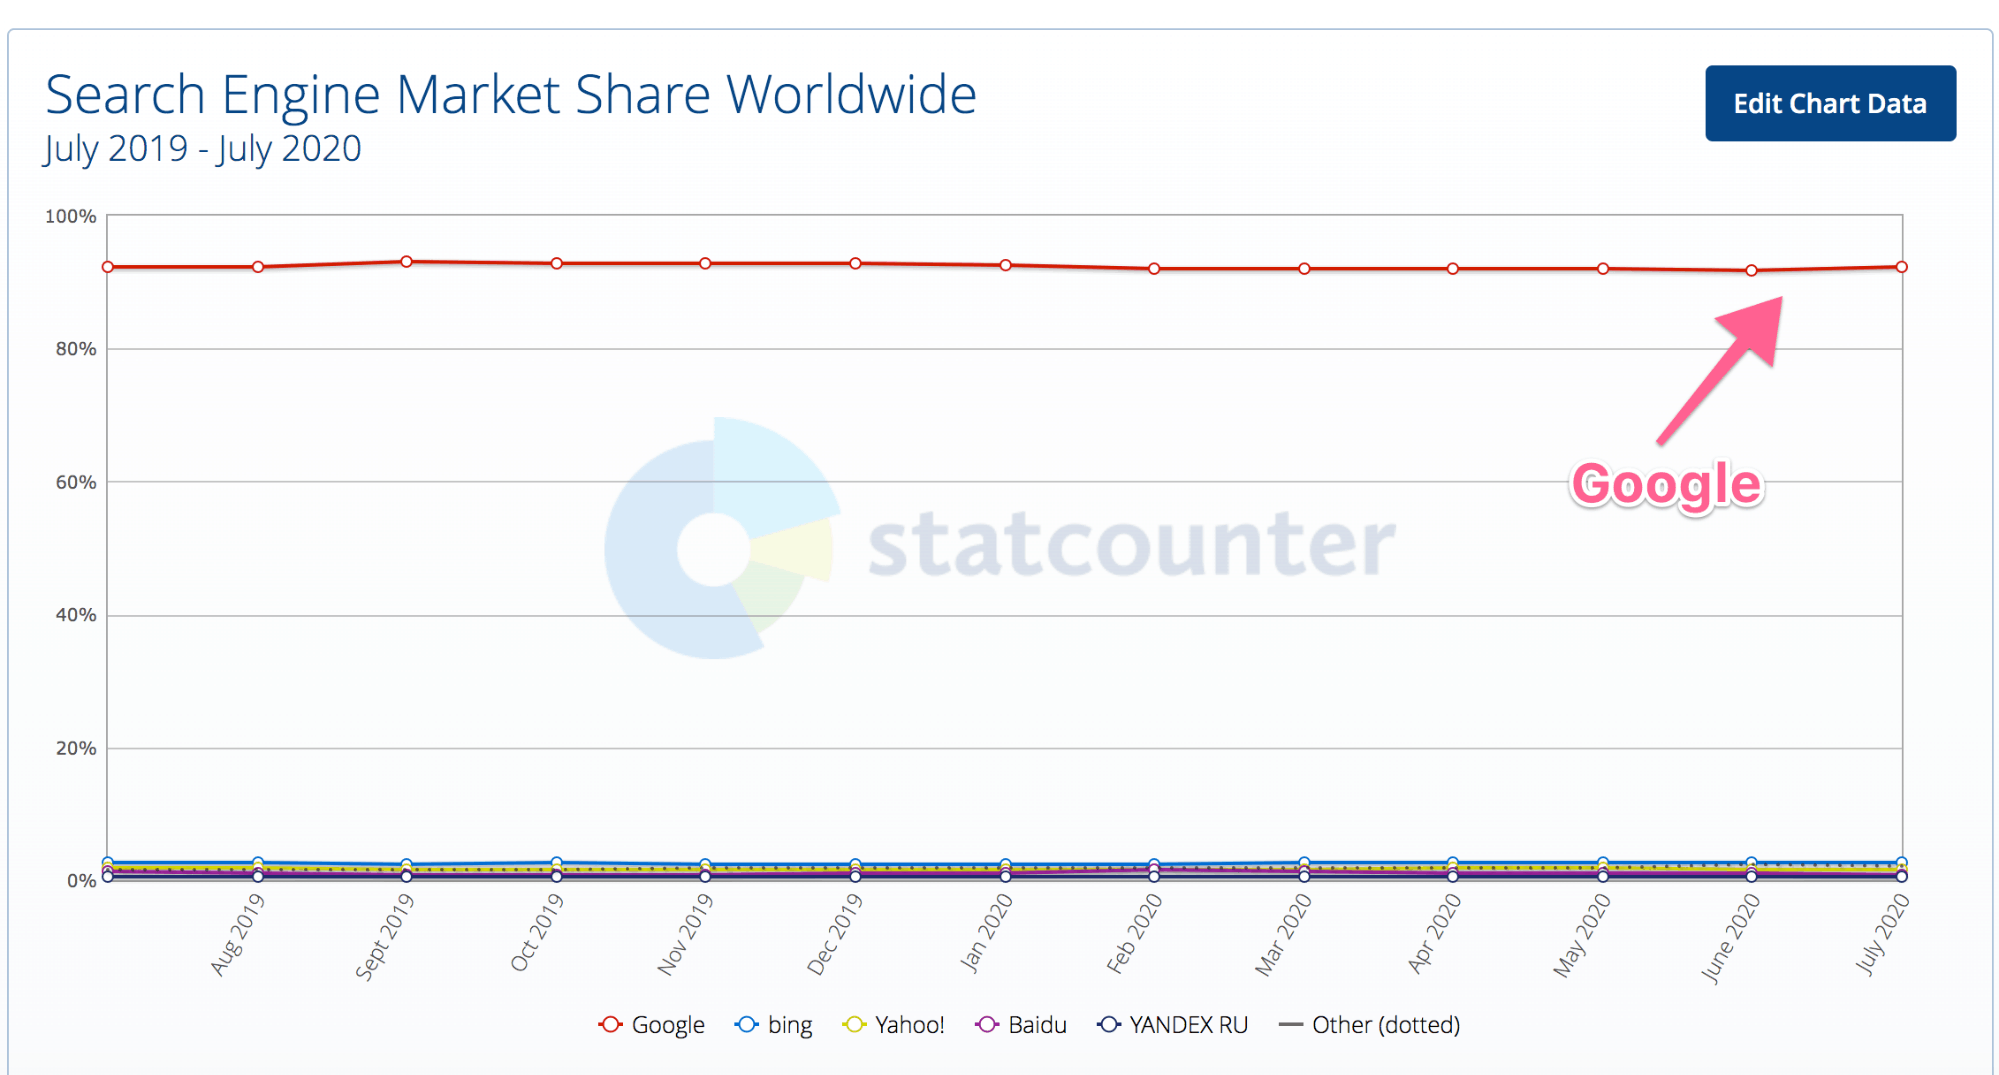 A chart showing search engine market share worldwide